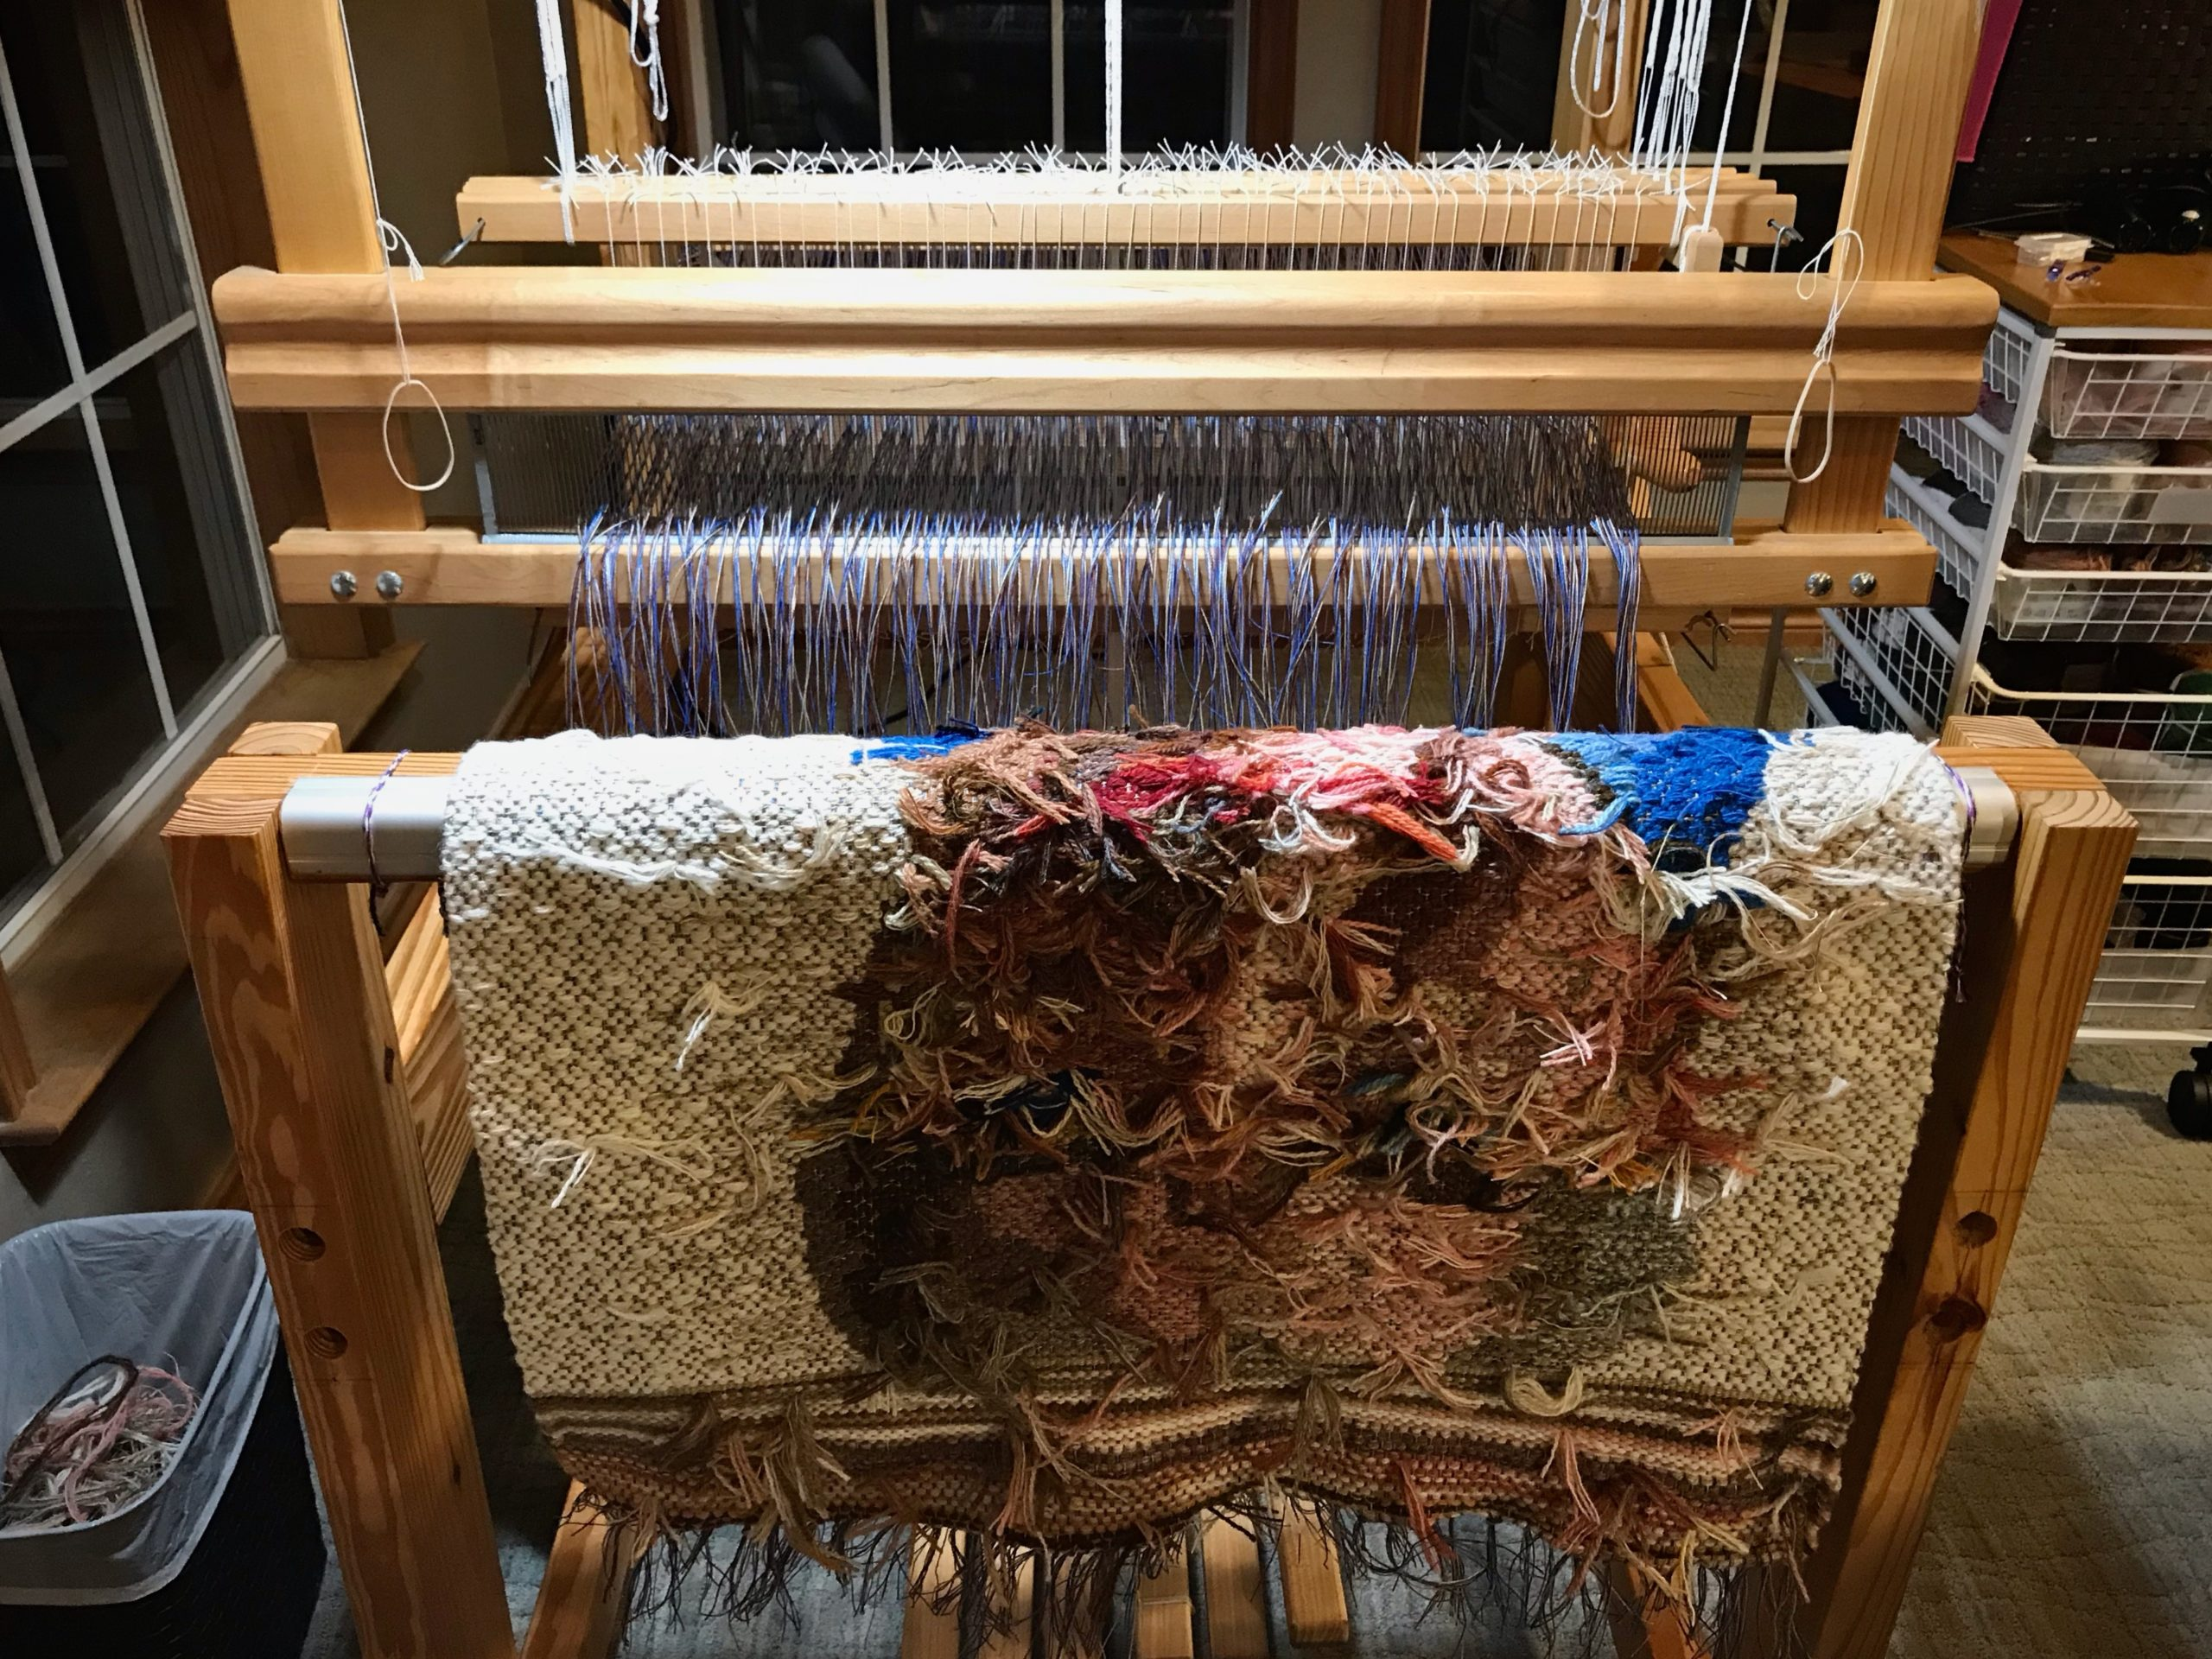 New tapestry, just cut off the loom.